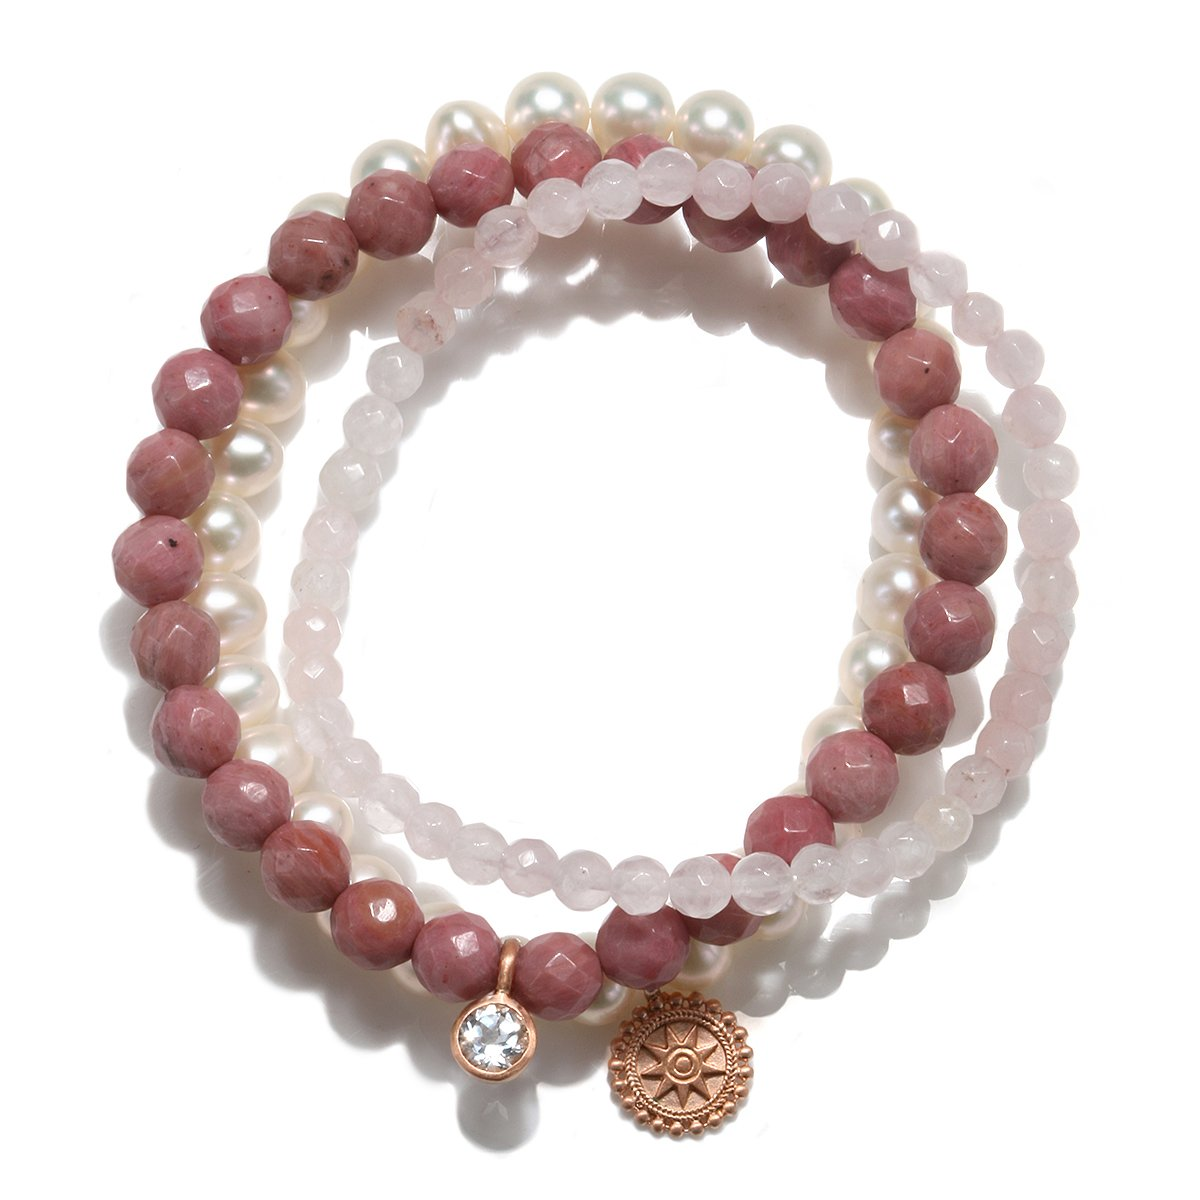 Satya Jewelry Womens Rhodonite Rose Gold Mandala Stretch Bracelet Set, One Size